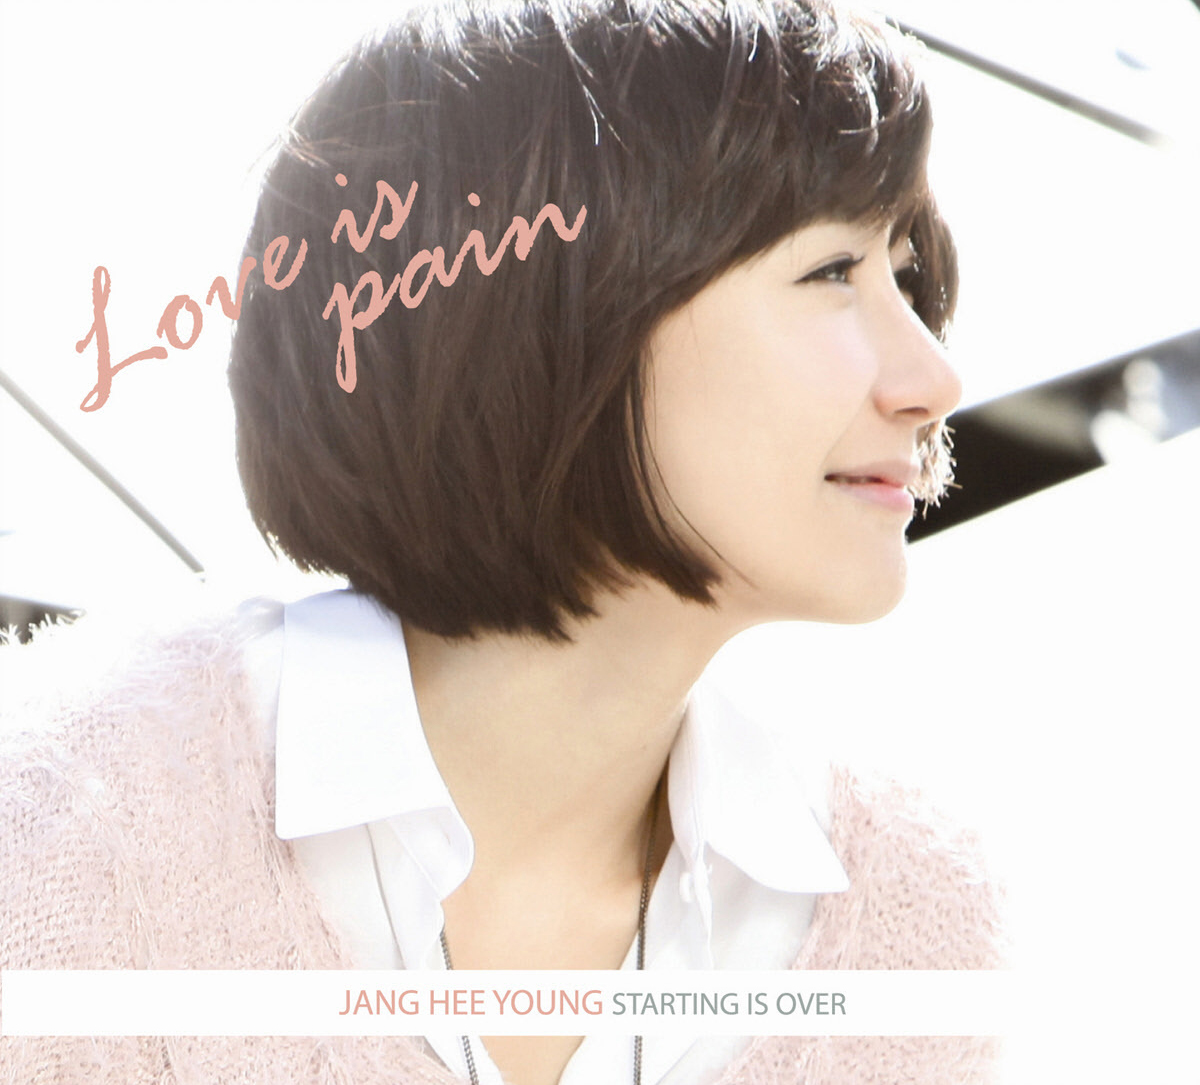 20170911.0537.17 Jang Hee Young - Starting is Over cover.jpg